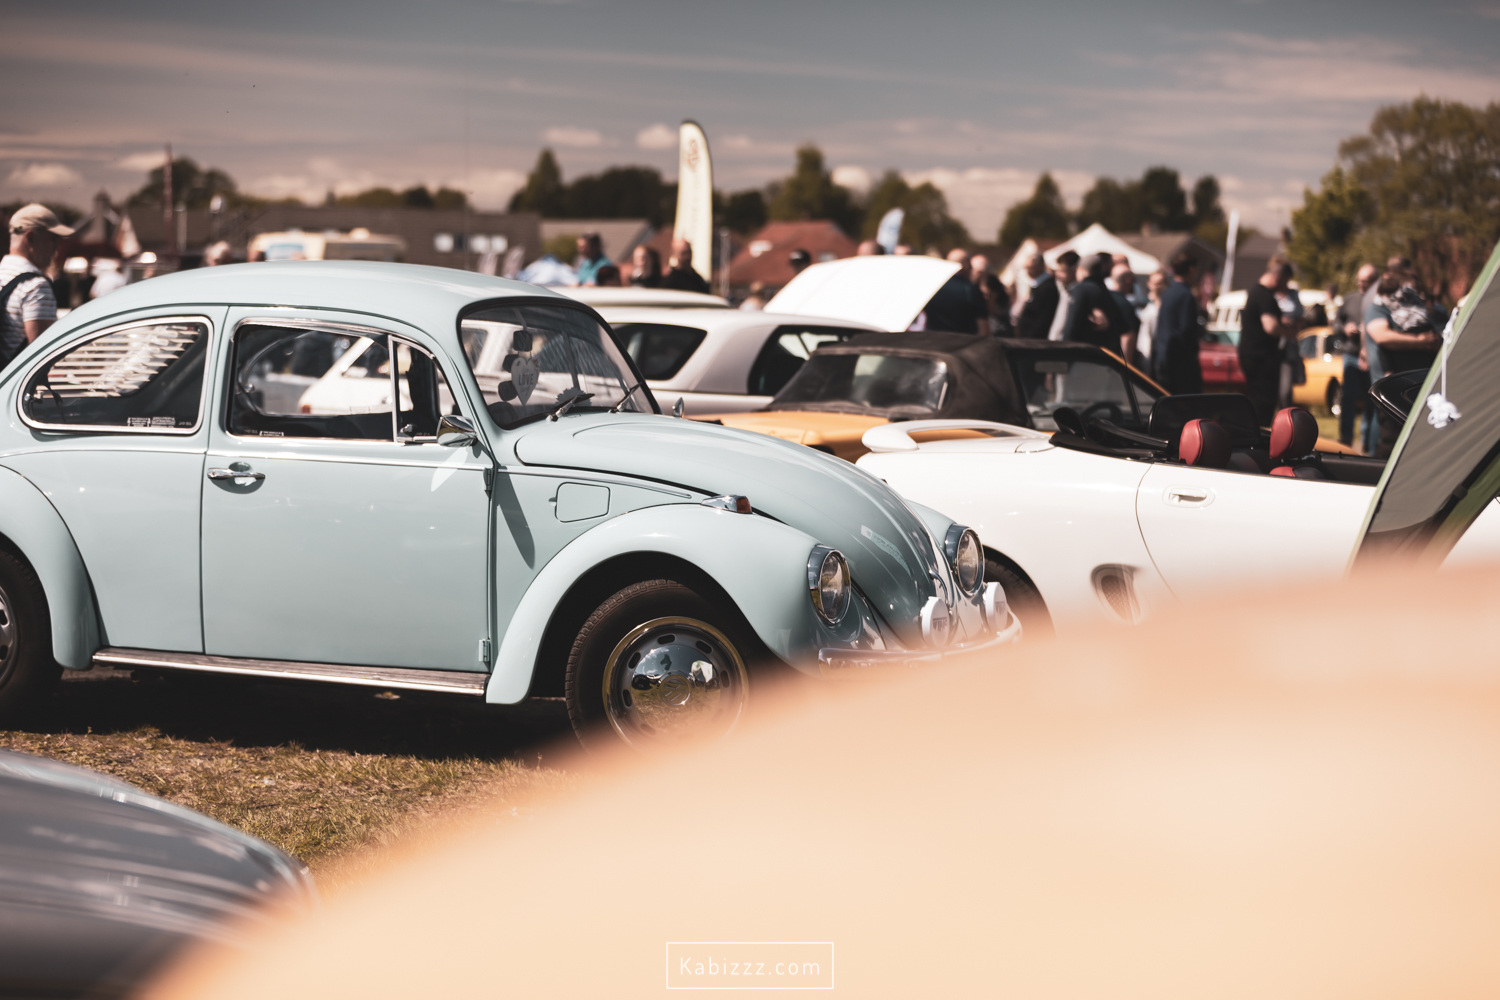 Kabizzz_Photography_Stirling_District_Classic _cars-146.jpg